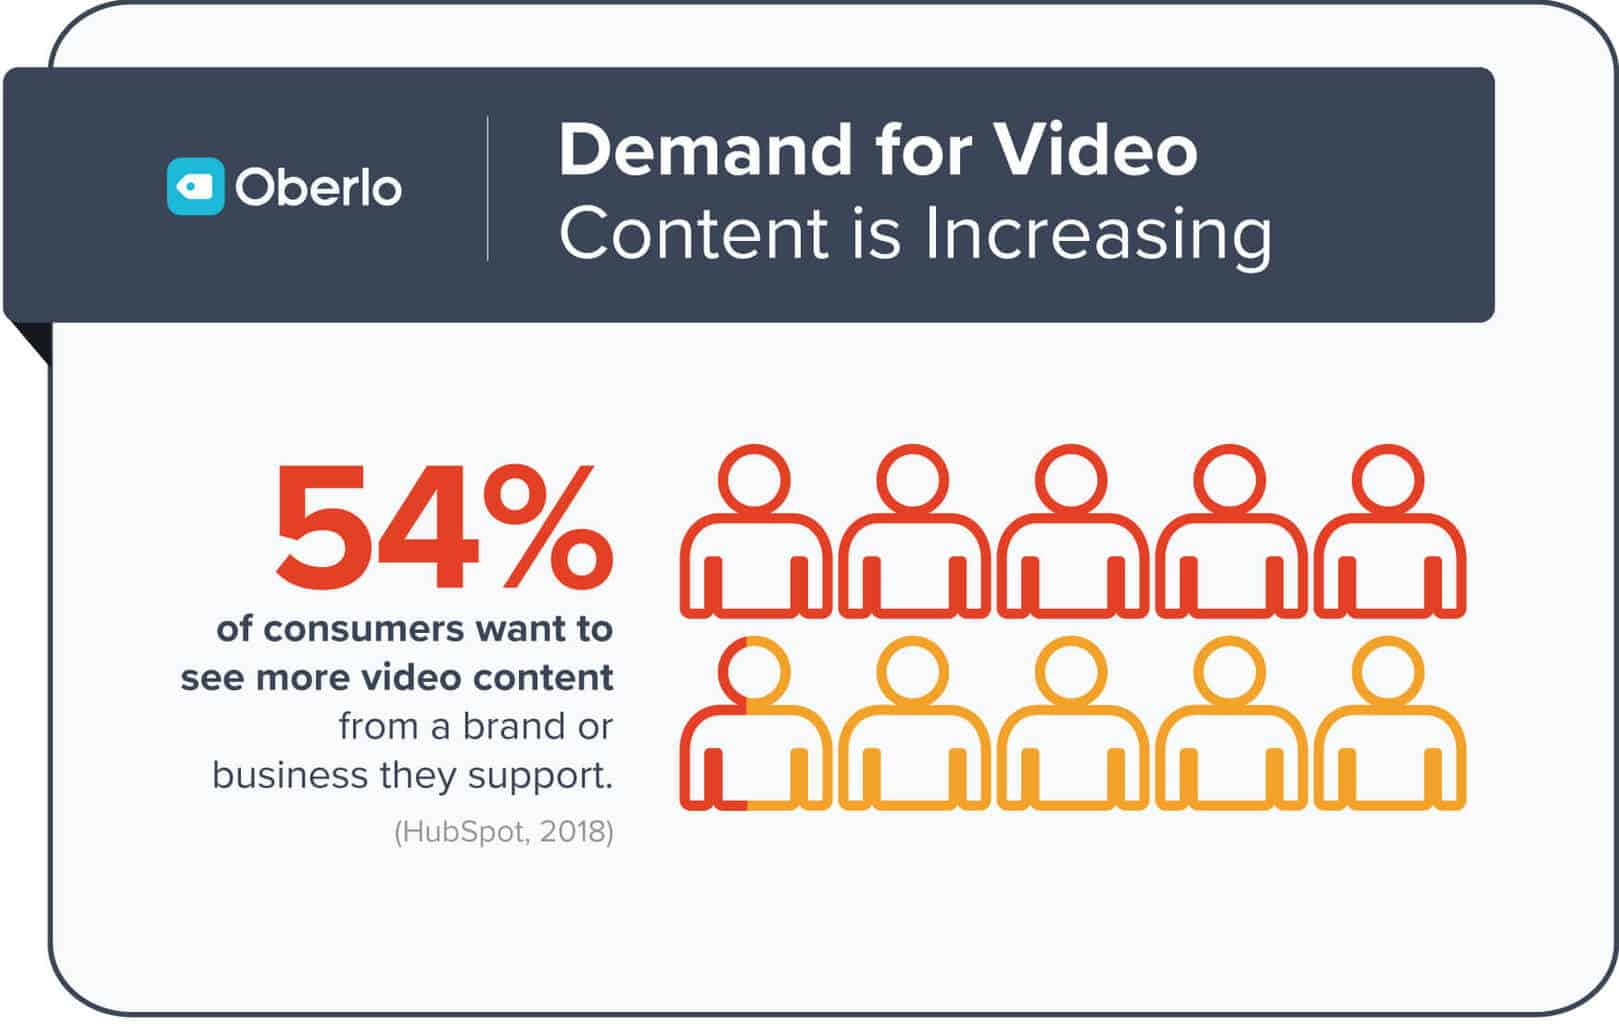 demand for video continues to increase